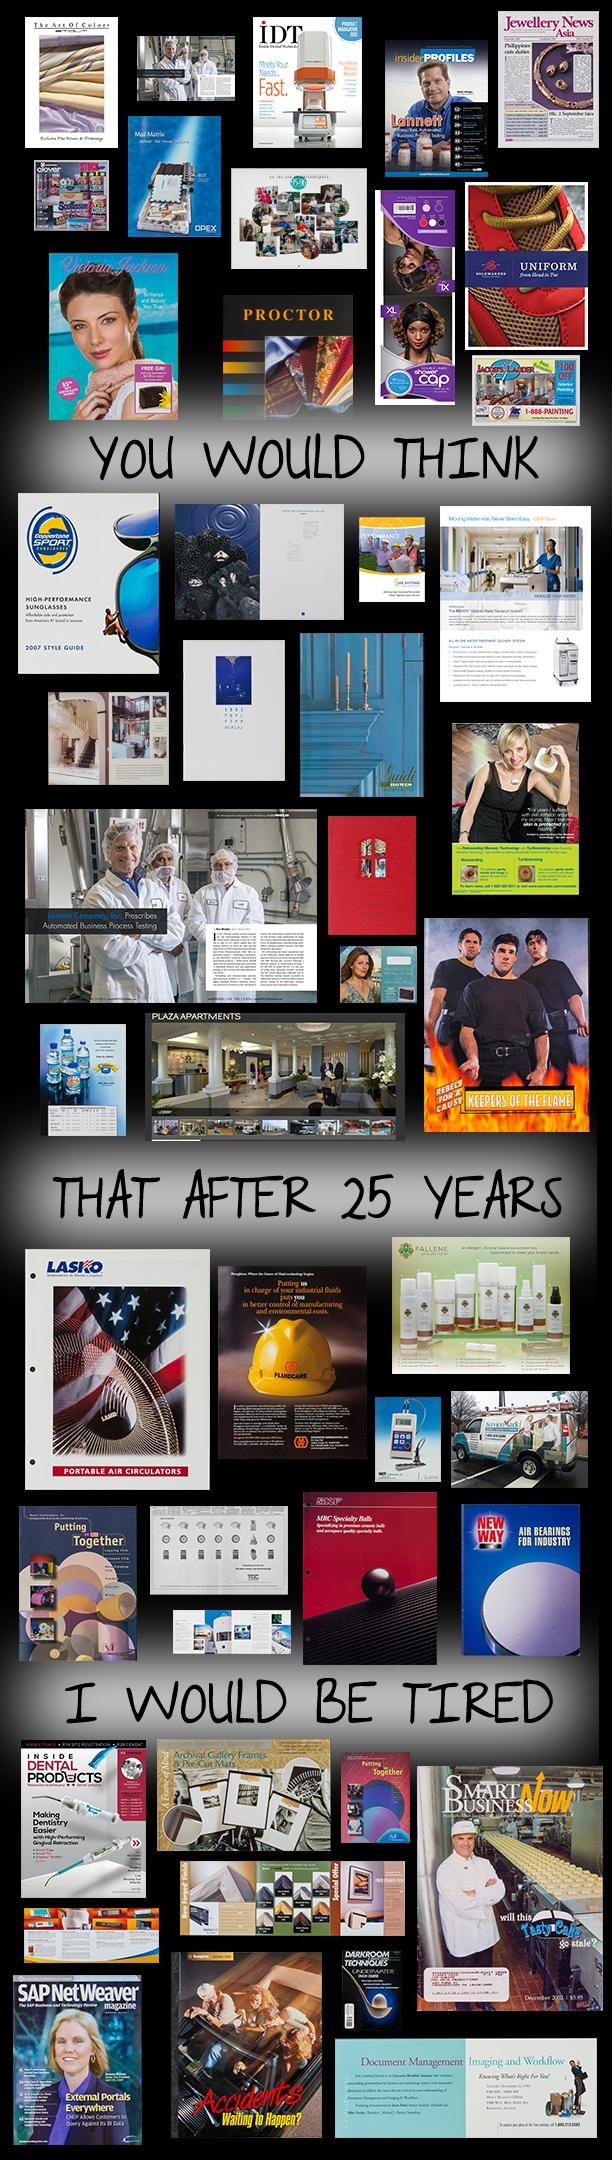 A collage from MarCom Alliance partner Pau Hanna Productions, which is celebrating 25 years in commercial photography.